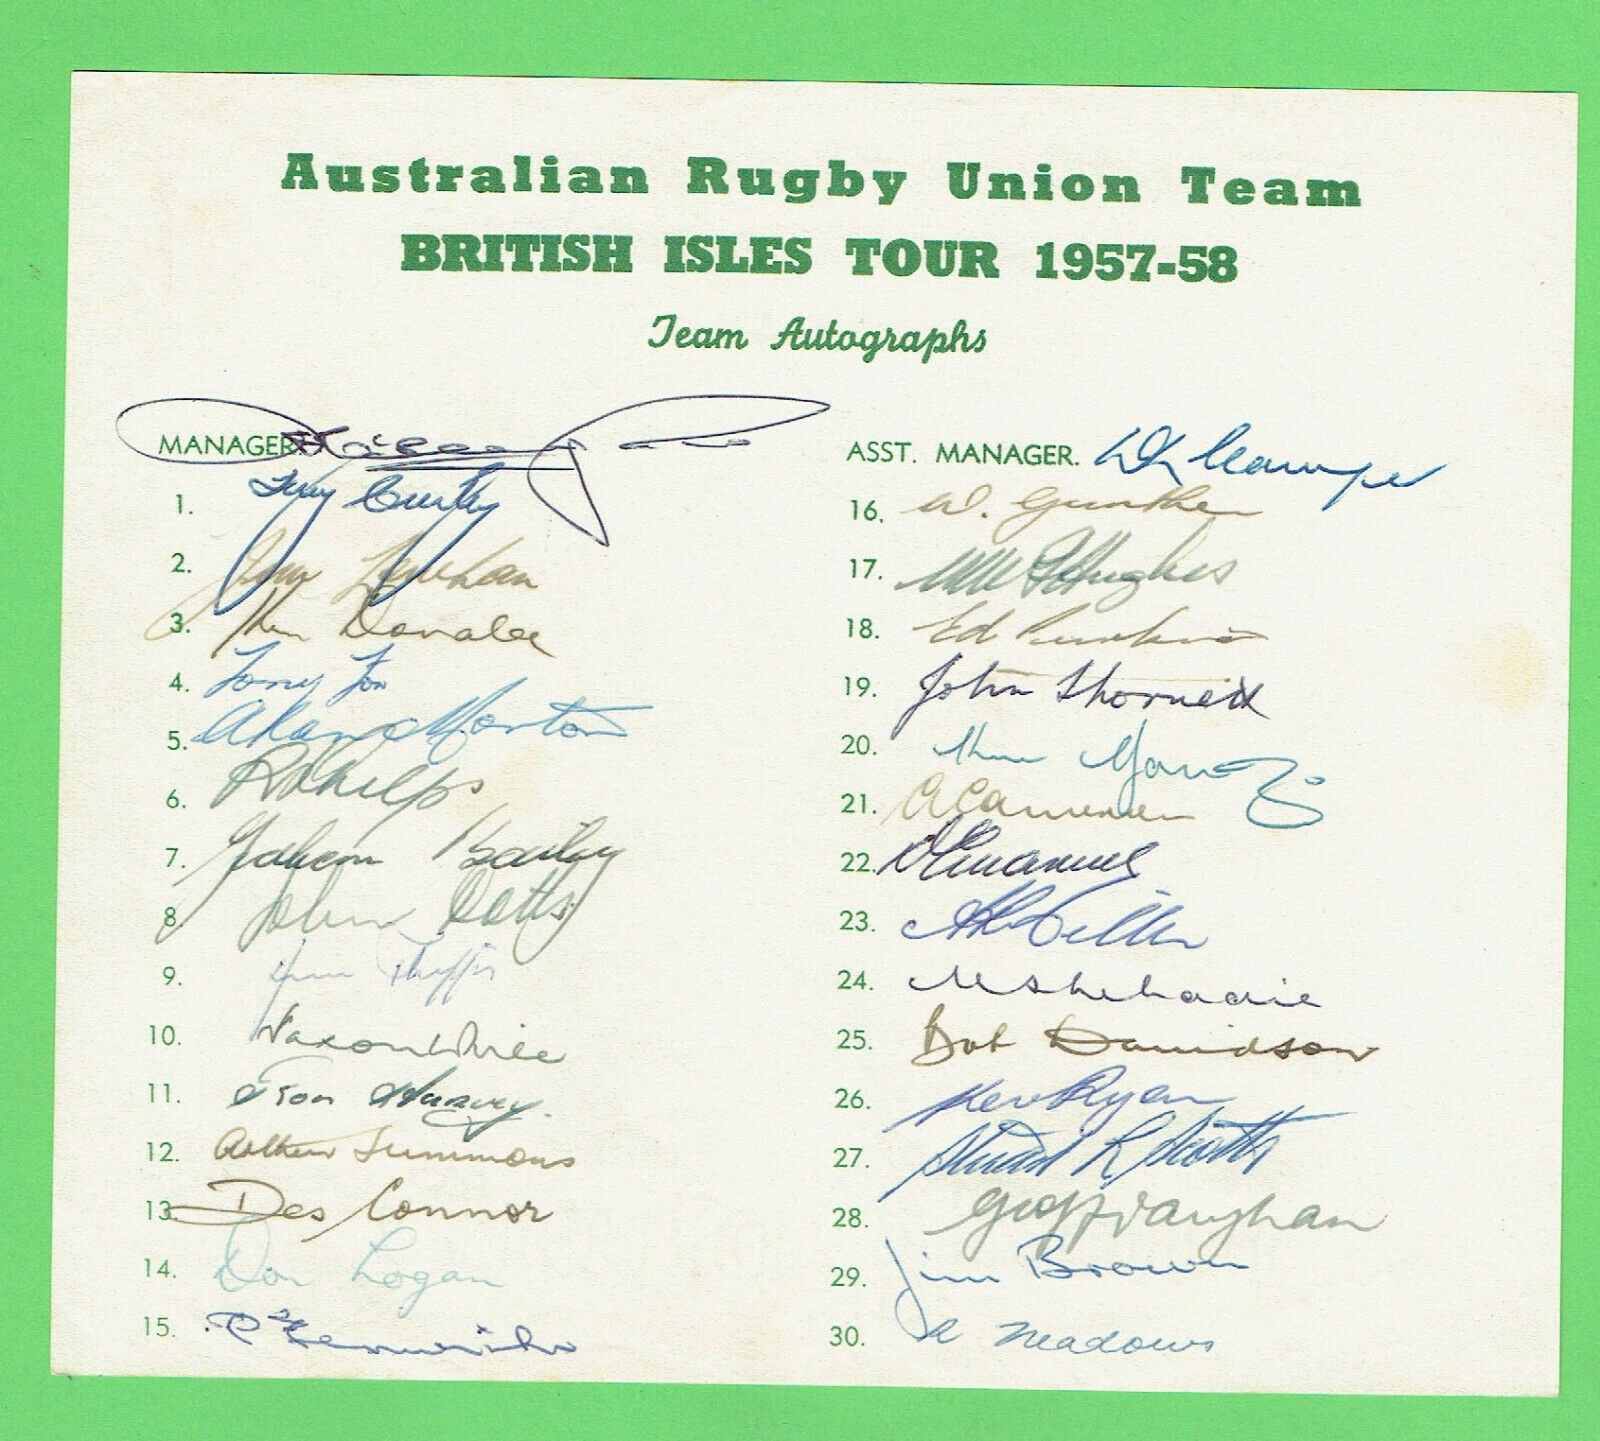 T308. AUSTRALIAN  RUGBY UNION TEAM SIGNATURES - BRITISH ISLES TOUR 1957-58